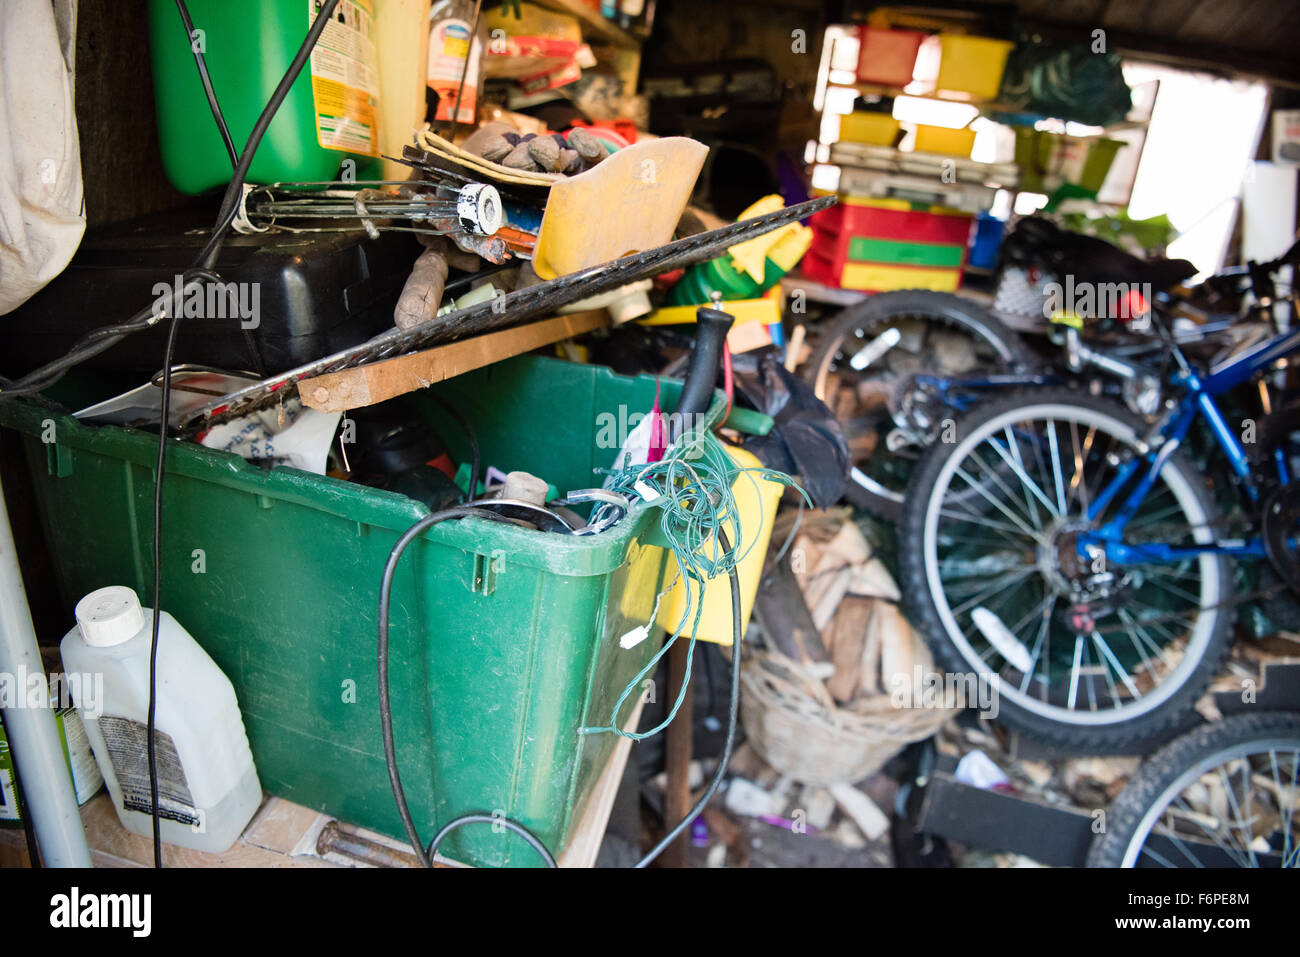 Inside a messy and cluttered wooden garage shed with tools, bikes and garden equipment piled up on uneven shelves - Stock Image